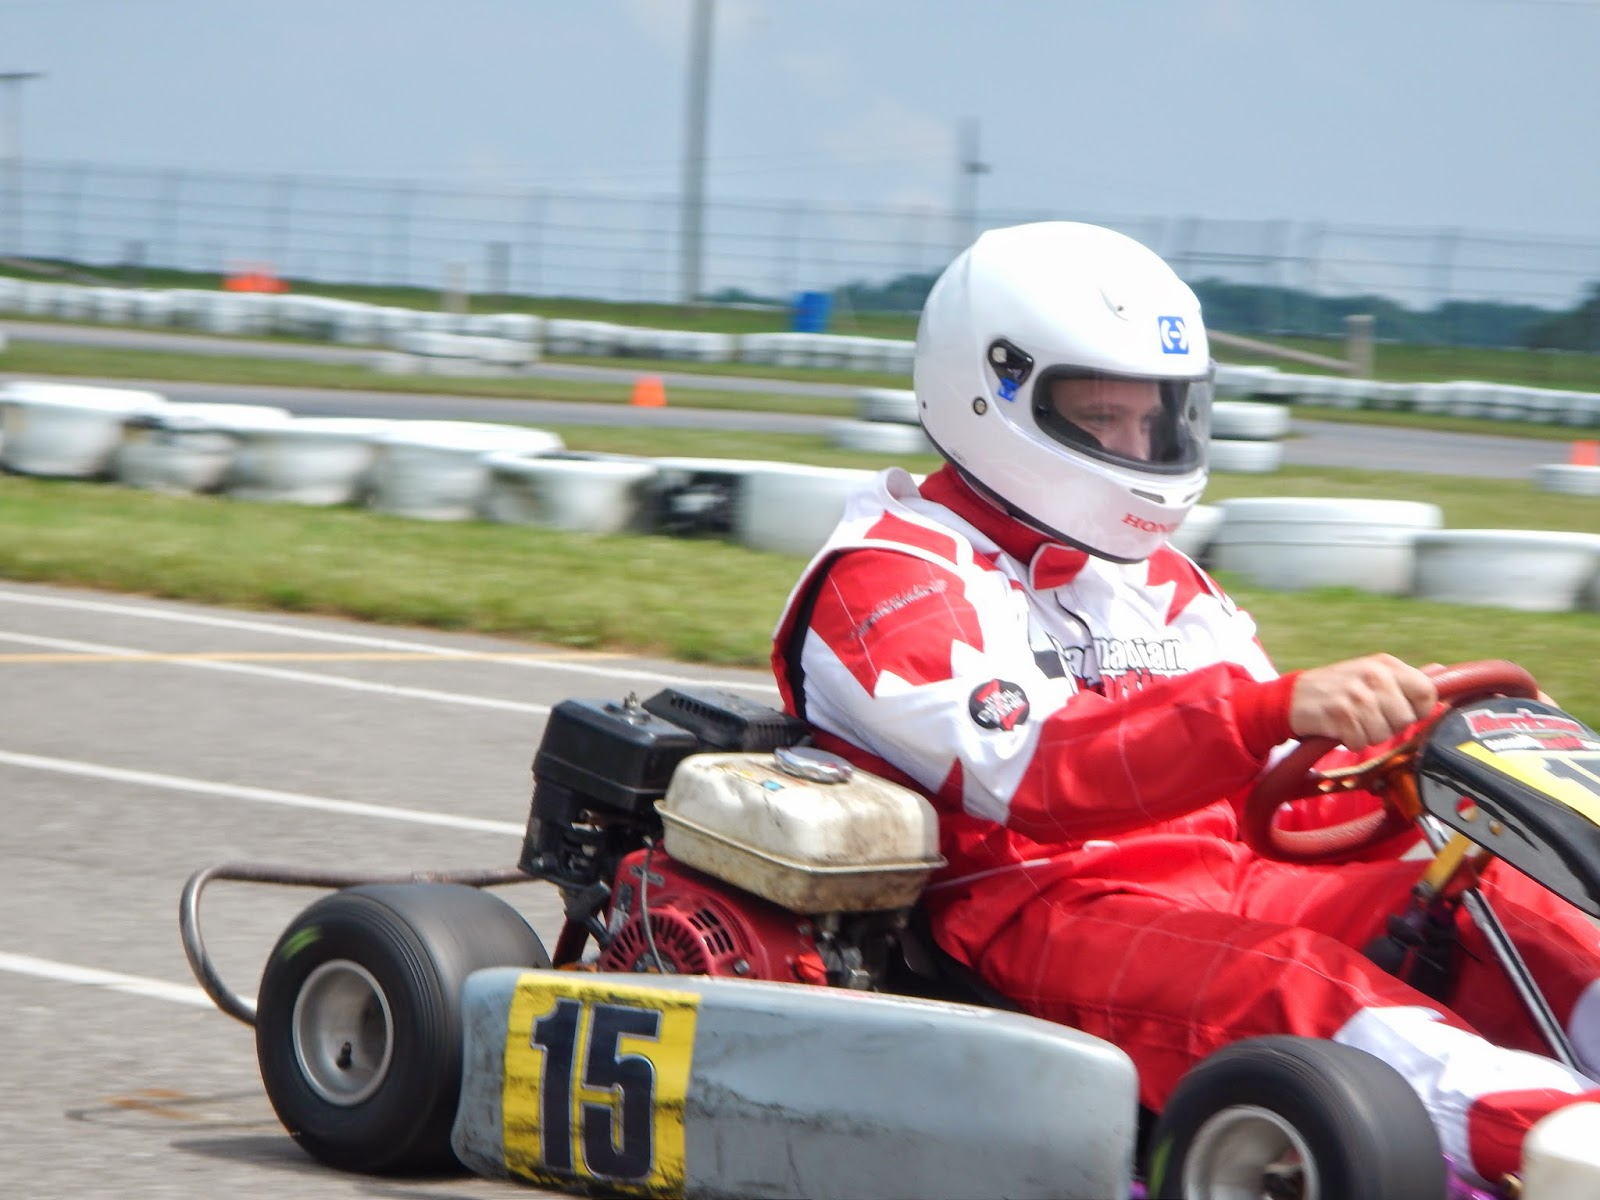 Honda powered go kart